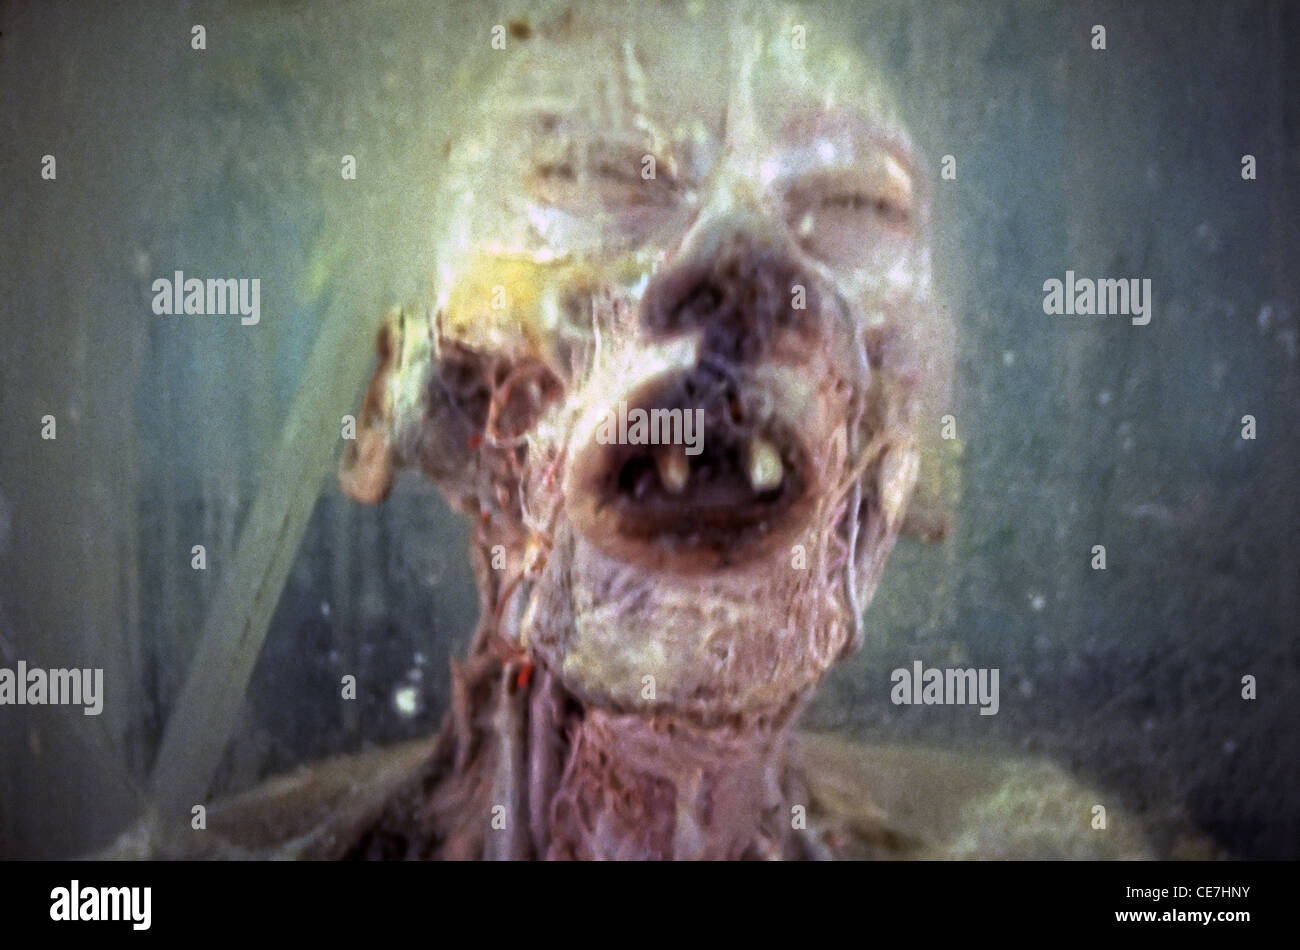 Corpse in formaldehyde jar displayed in the Beijing Museum of Natural History located at Dongcheng District, Beijing - Stock Image